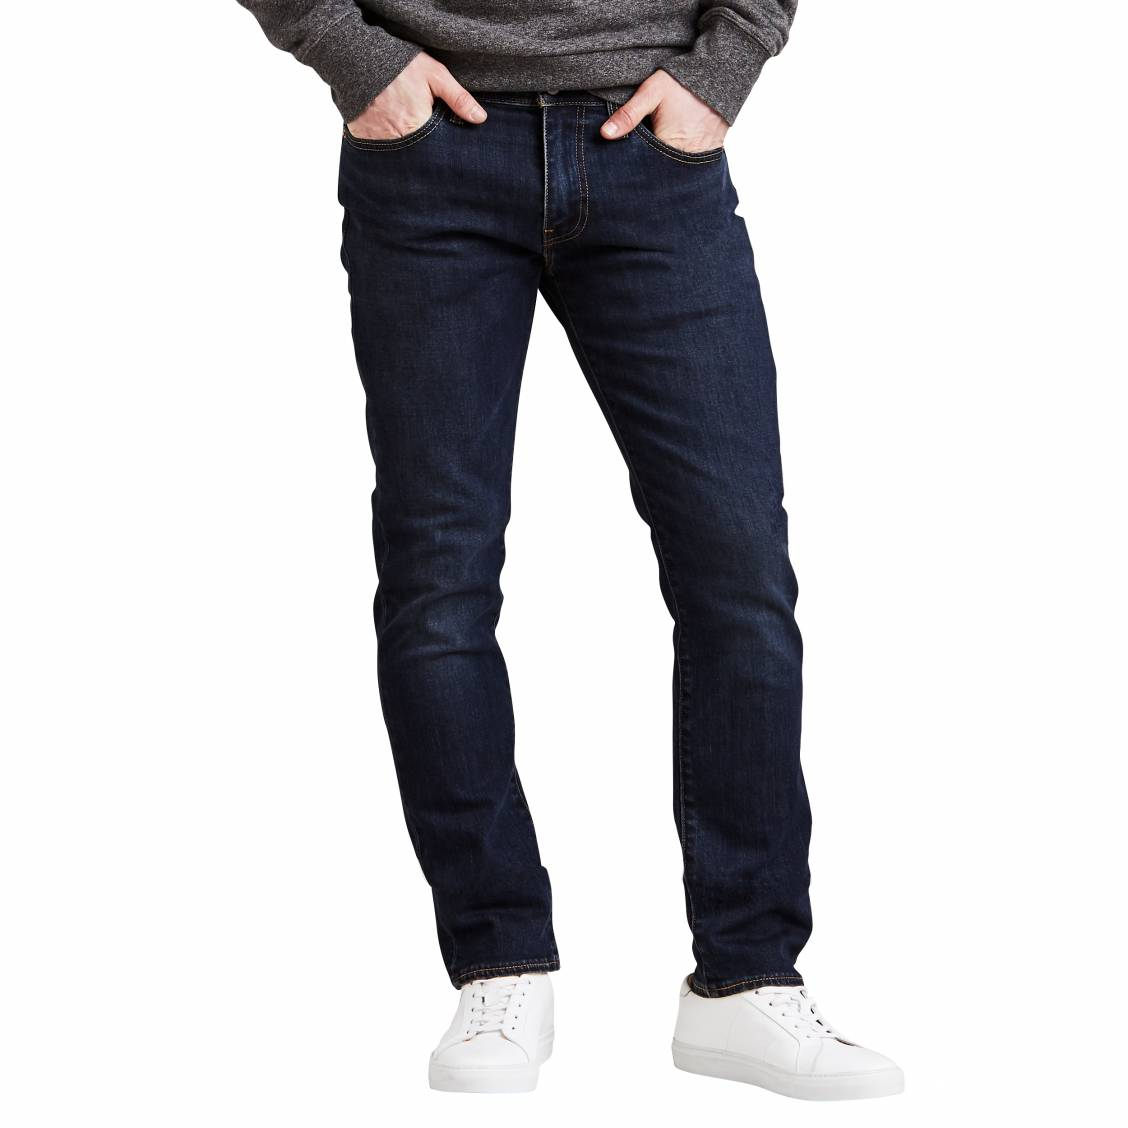 Brut Stretch Bleu Fit Adapt Coton 511 Levi's En Jean Slim Zebroid qHvAxZWw